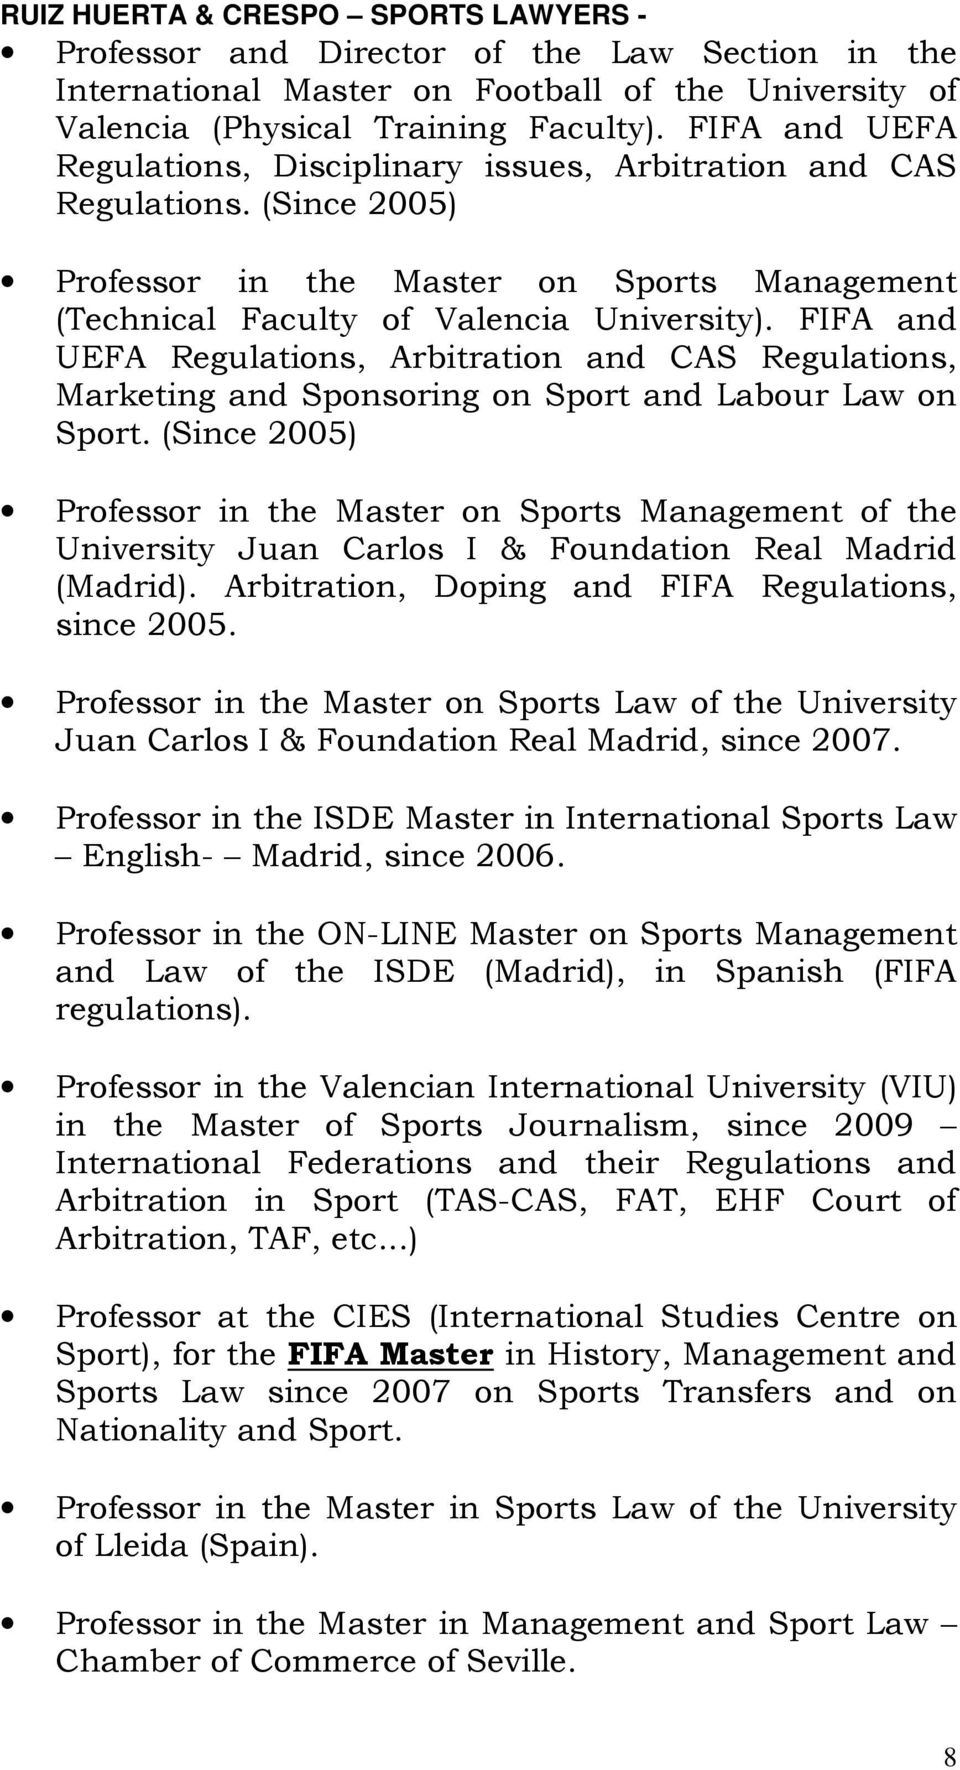 FIFA and UEFA Regulations, Arbitration and CAS Regulations, Marketing and Sponsoring on Sport and Labour Law on Sport.